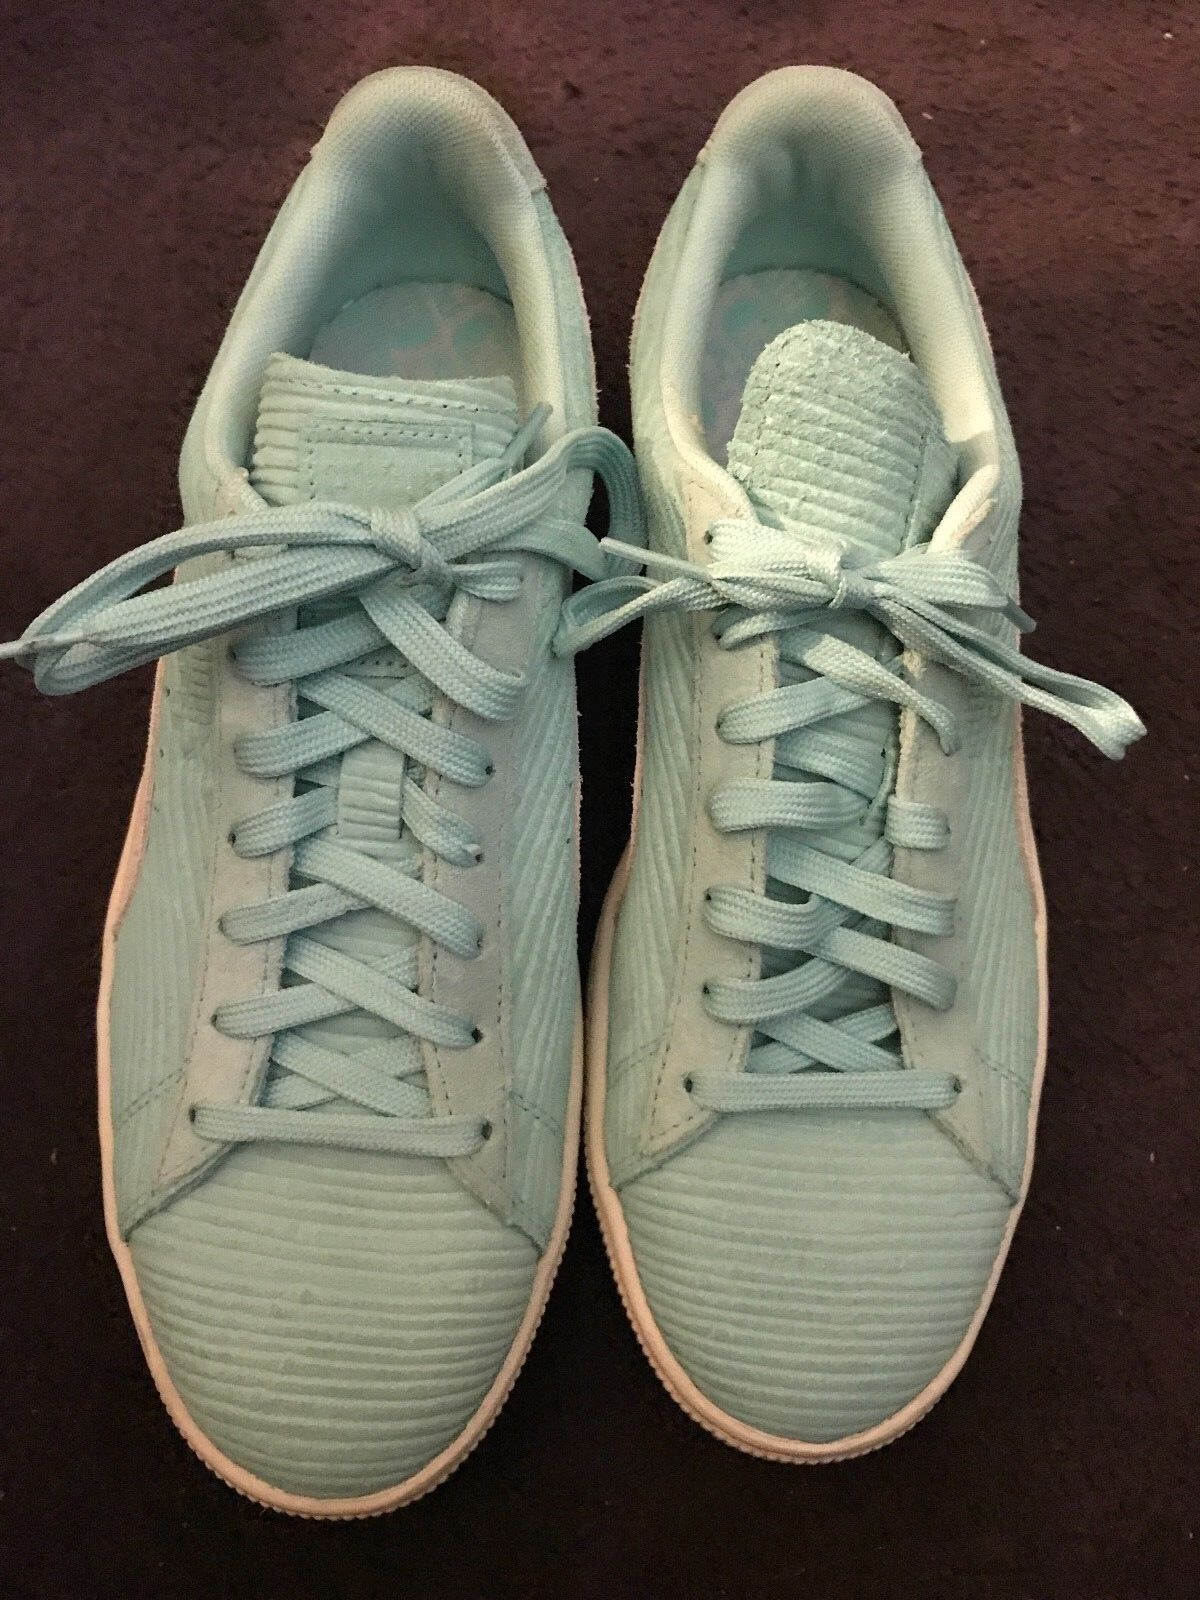 Puma Suede Classic Teal bluee Suede Ridged Lace Up Sneakers Women's Sz 10